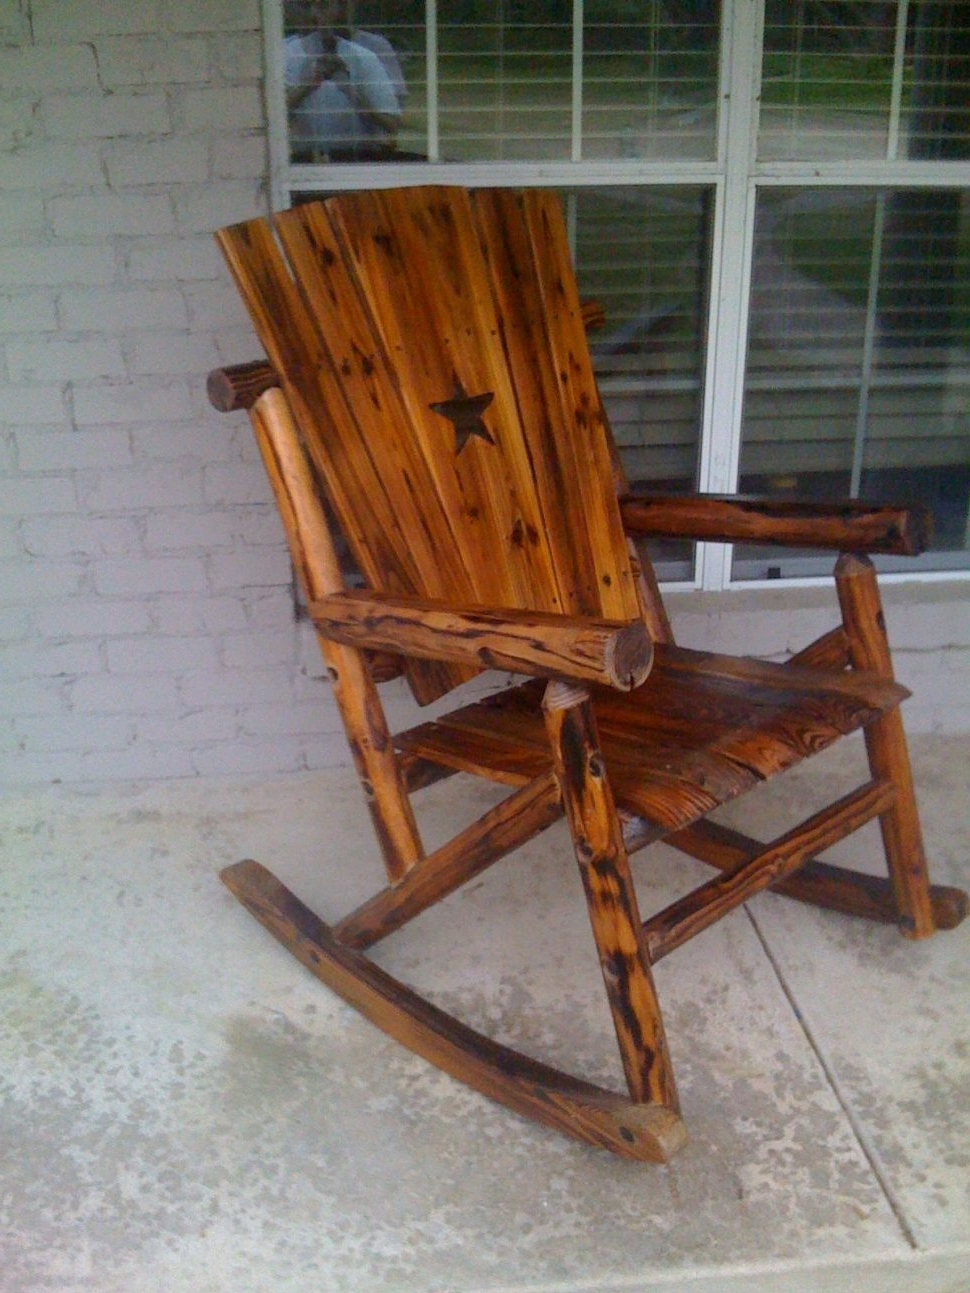 Well Known Rocking Chairs For Porch Inside Rustic Wooden Outdoor Rocking Chairs – Outdoor Designs (View 14 of 15)